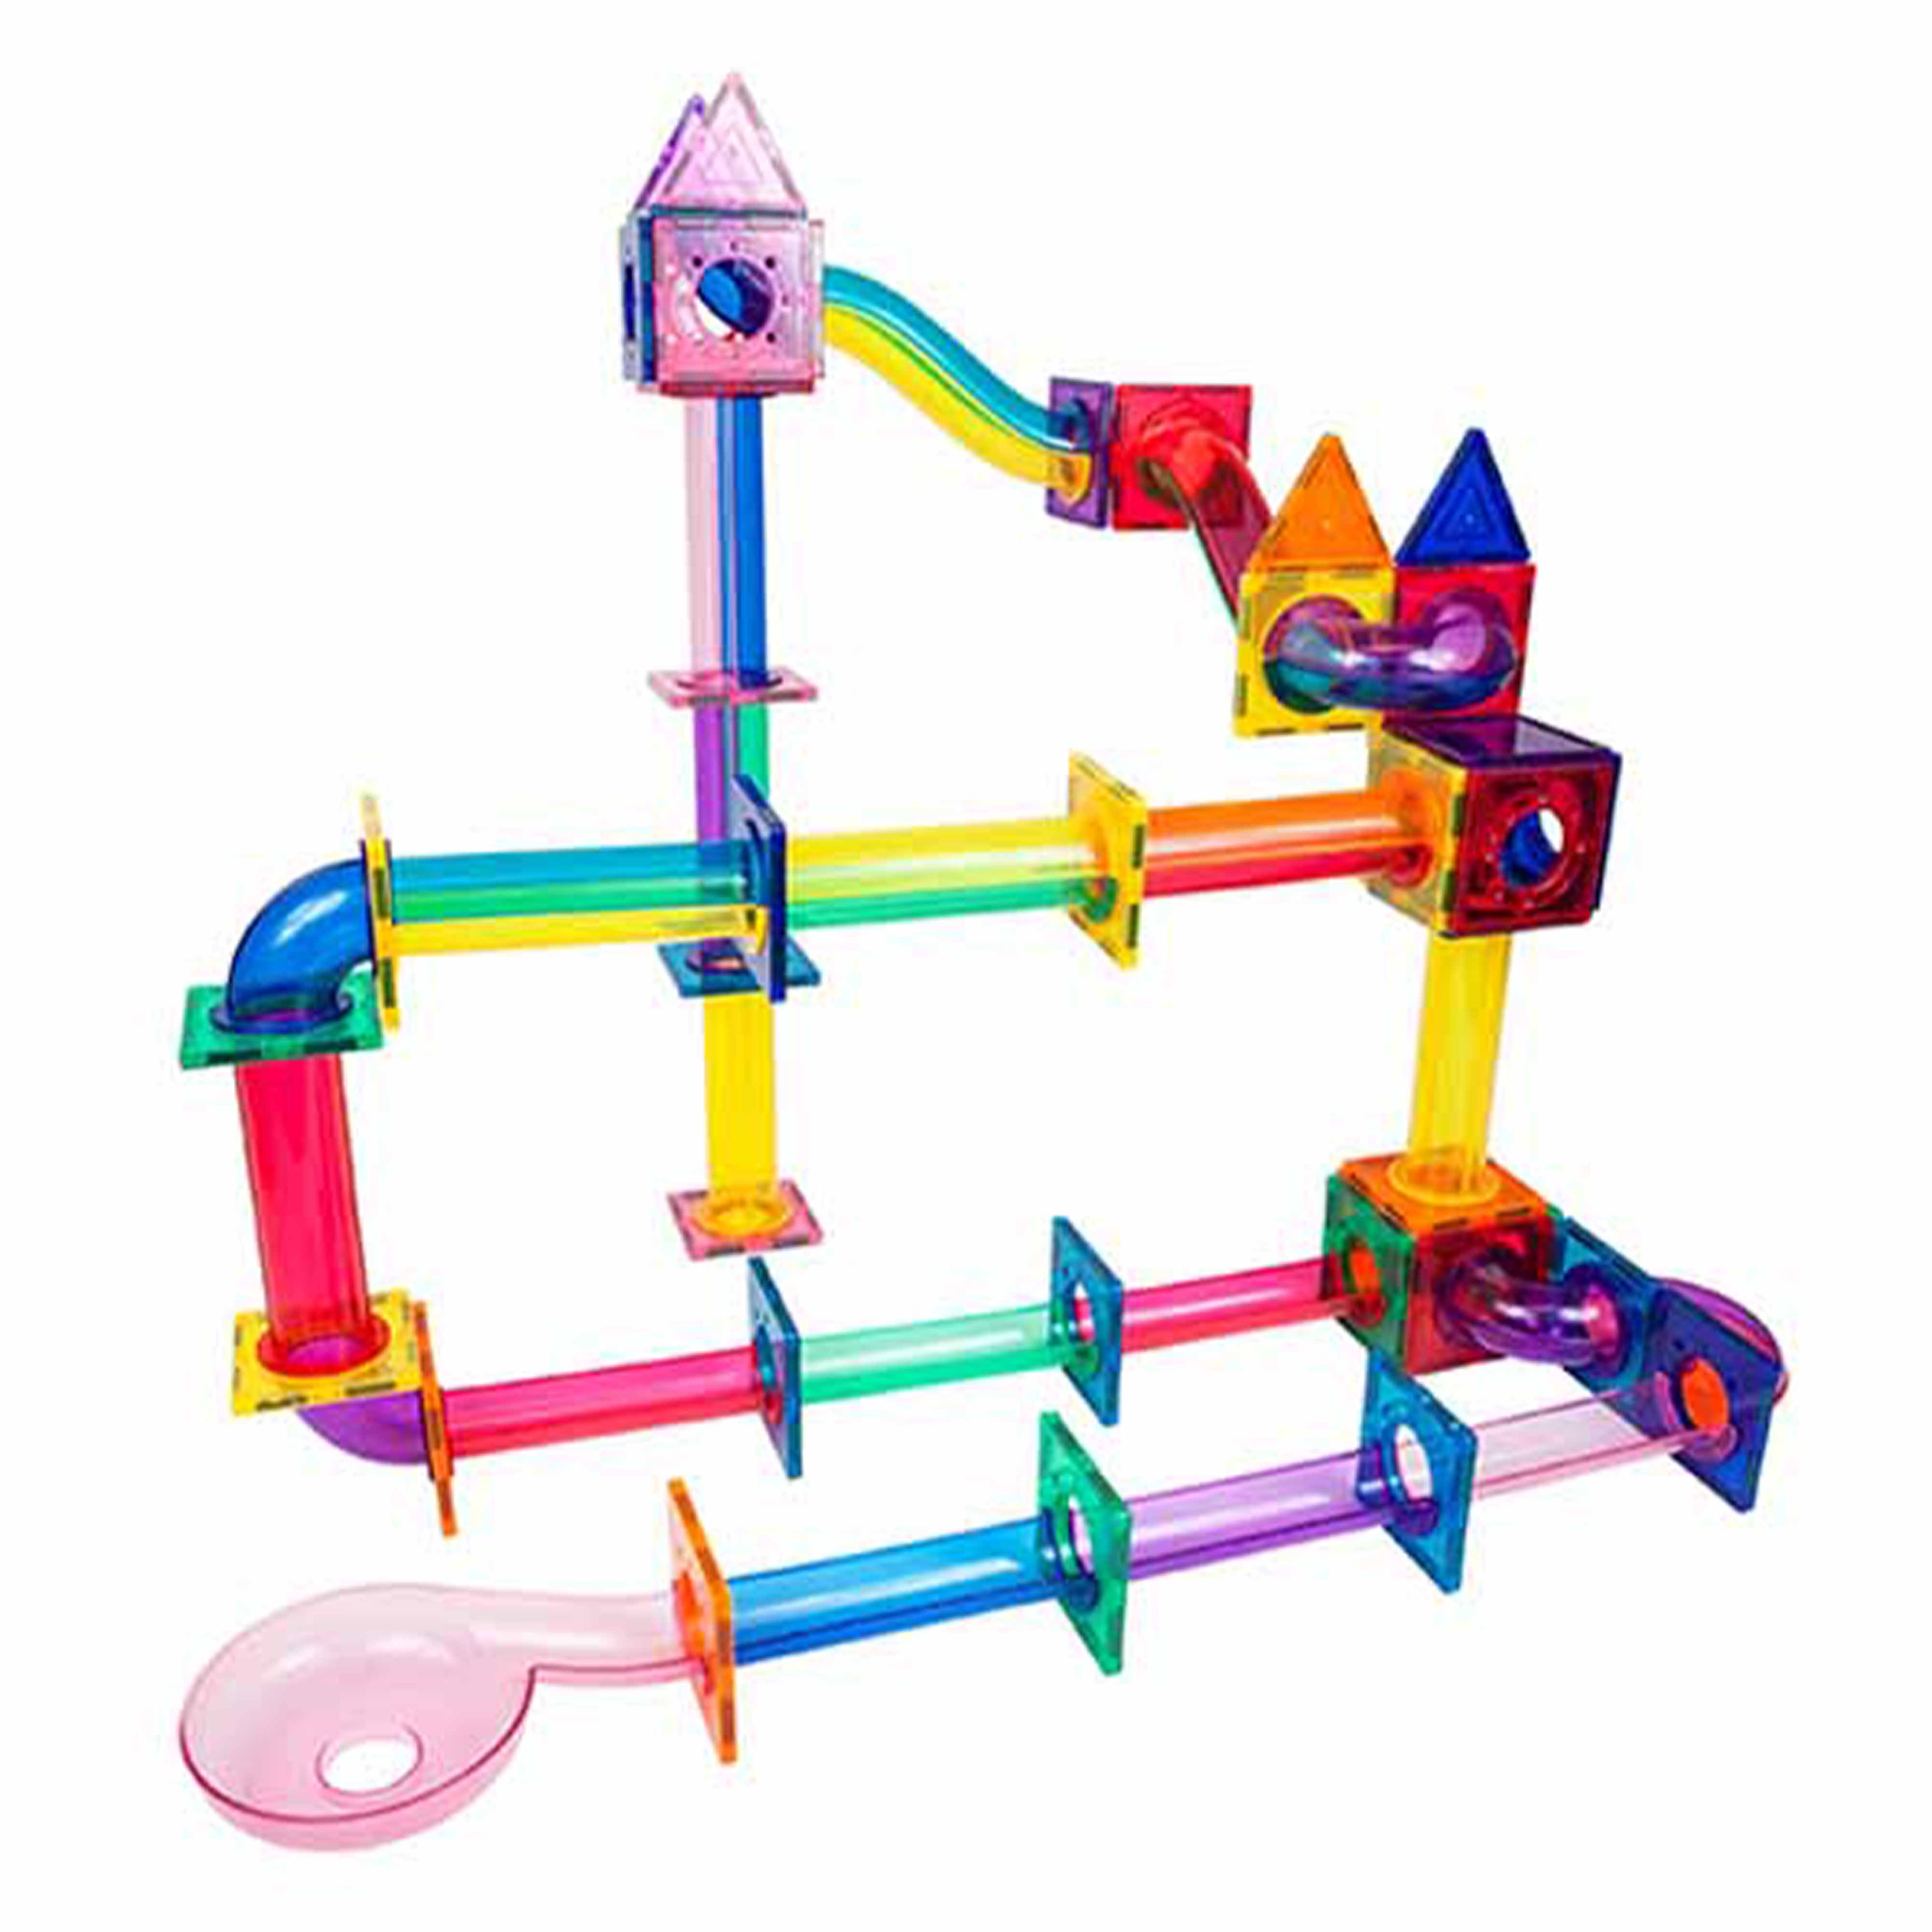 6e973bc6 b64e 4df8 9e53 aa6db11b88c9.  - PicassoTiles Marble Run 120 Piece Magnetic Building Blocks Magnet Tile Construction Toy Playset STEM Learning Educational Block Child Brain Development Kids Toys for Boys and Girls Age 3 and Up